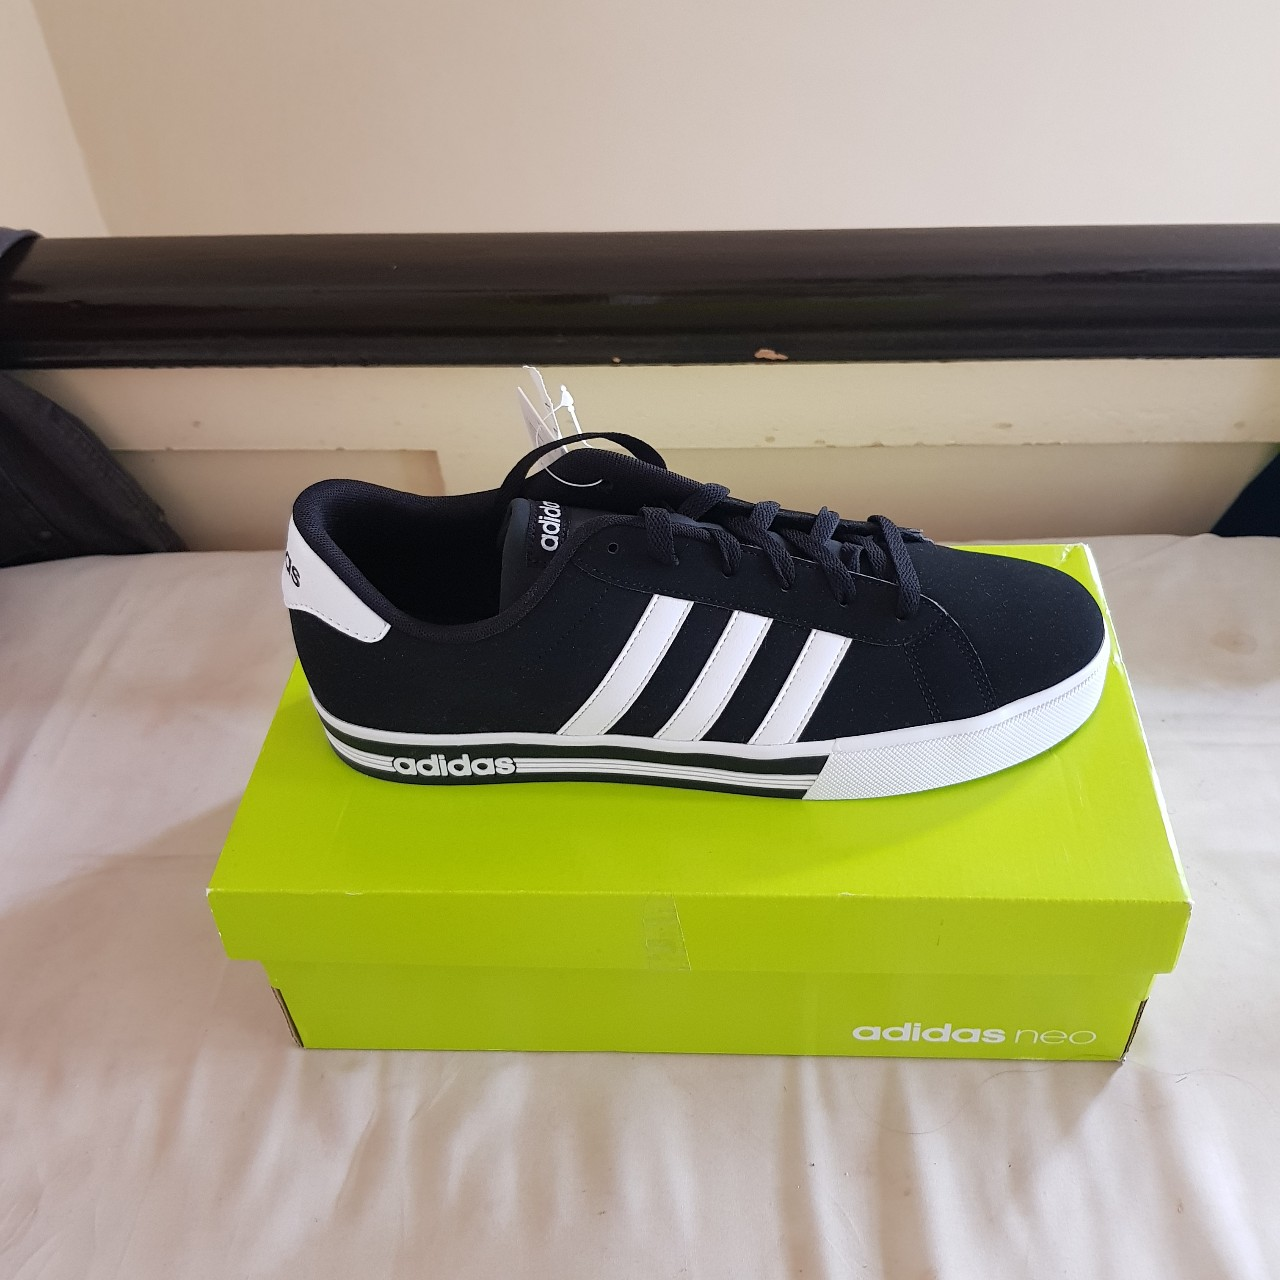 Brand new Adidas Neo trainers in black and white....